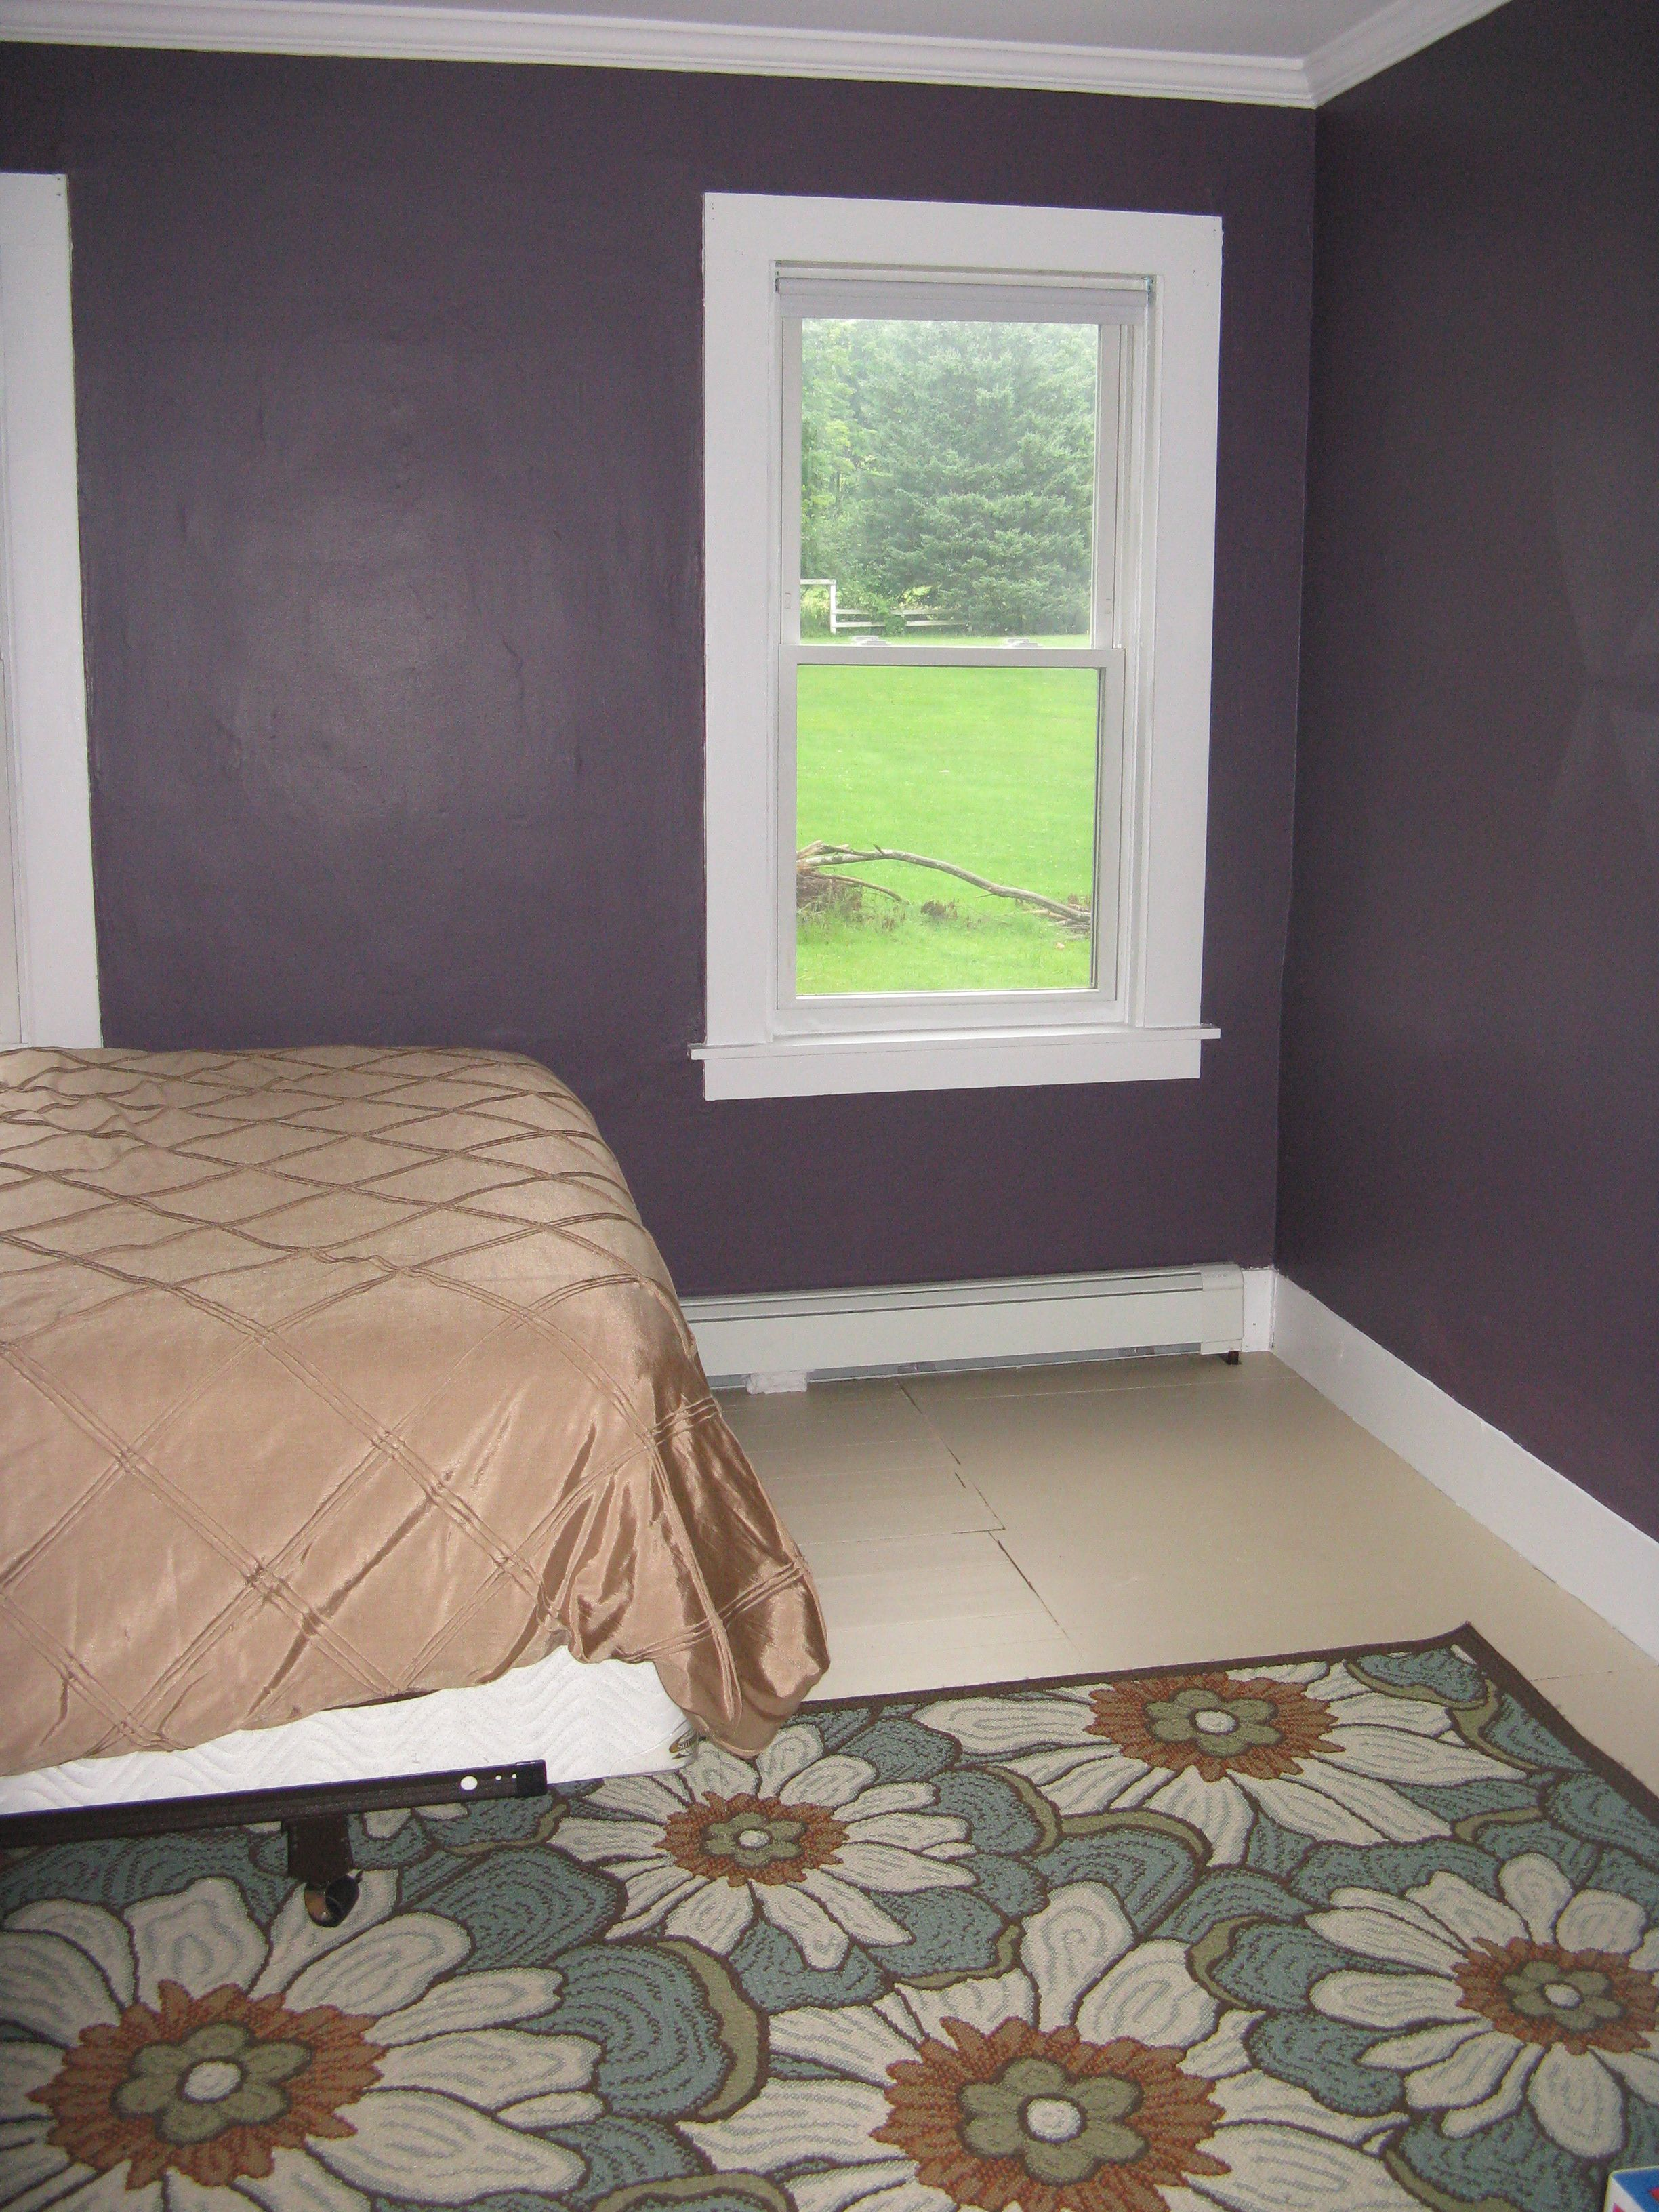 Plum Colors For Bedroom Walls Quixotic Plum Bedroom Pinterest Plum Walls Colors And Wall